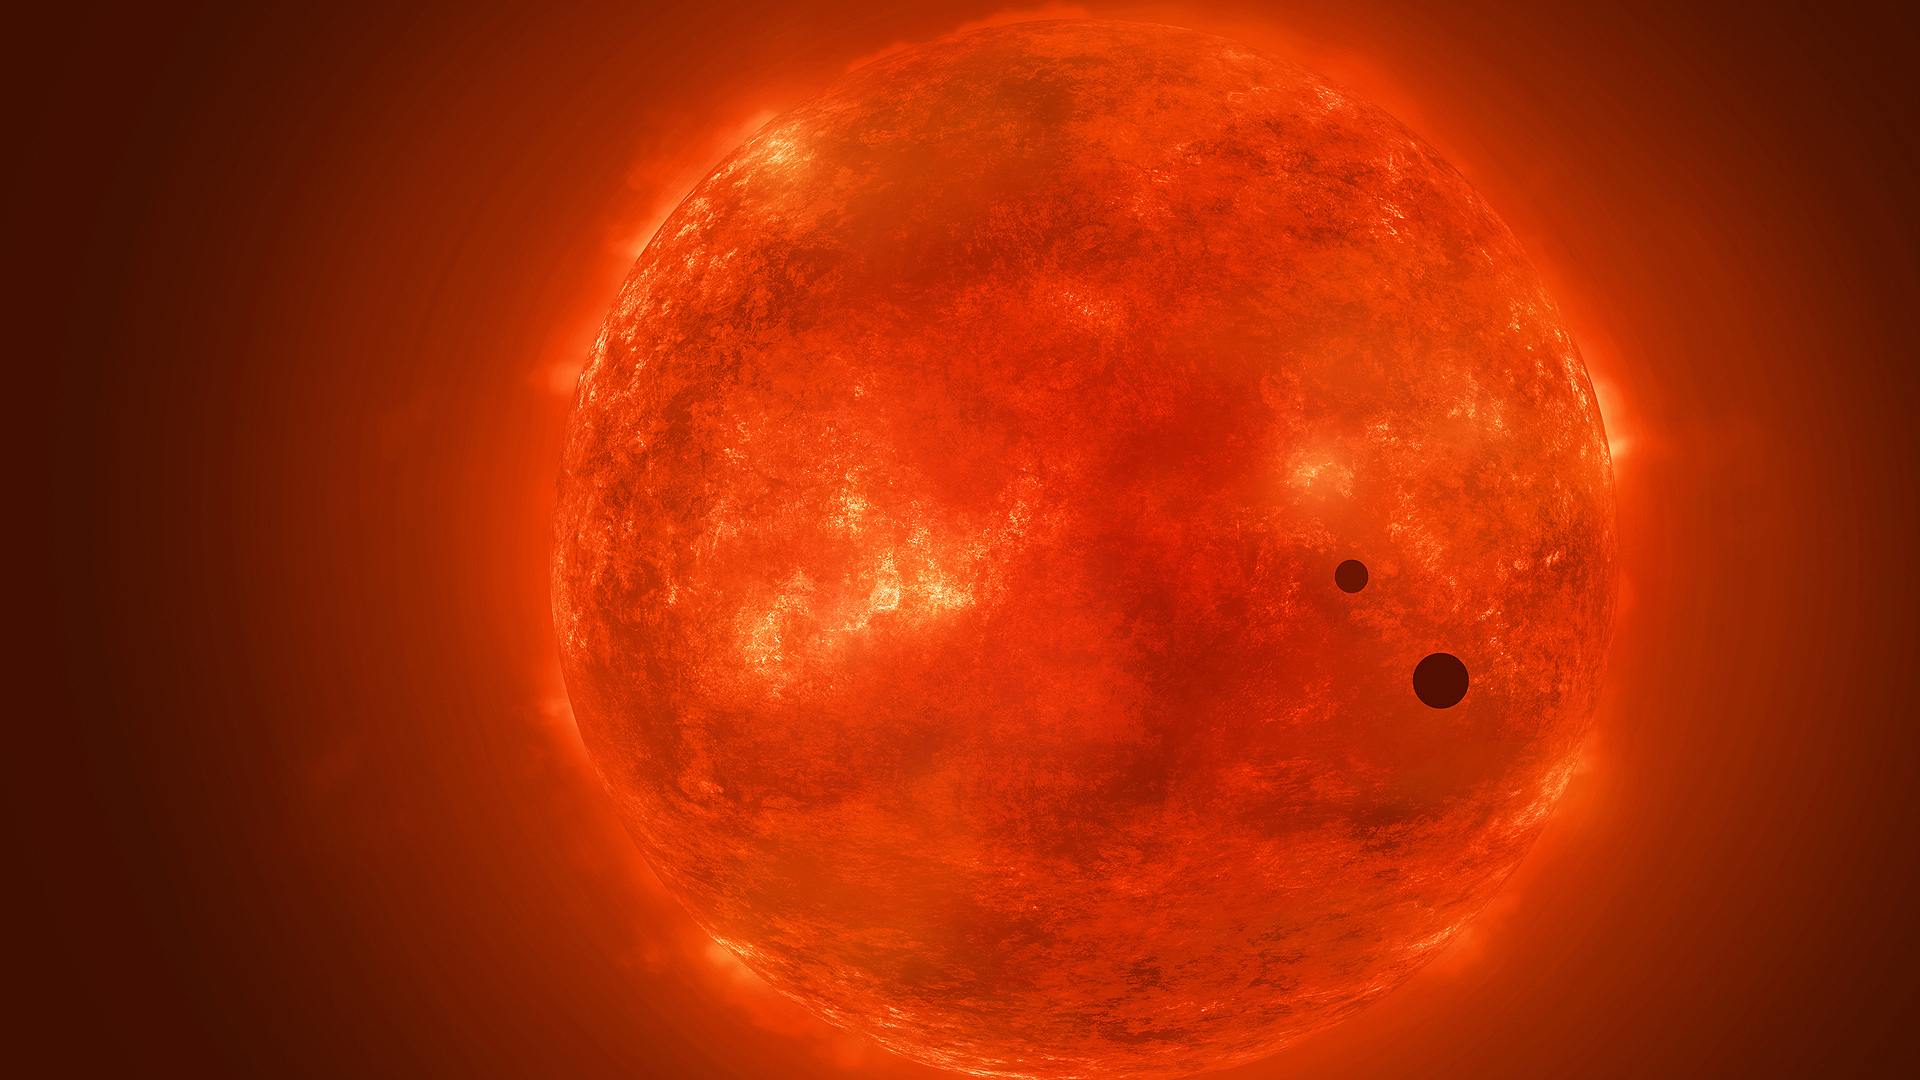 red star planet - photo #29